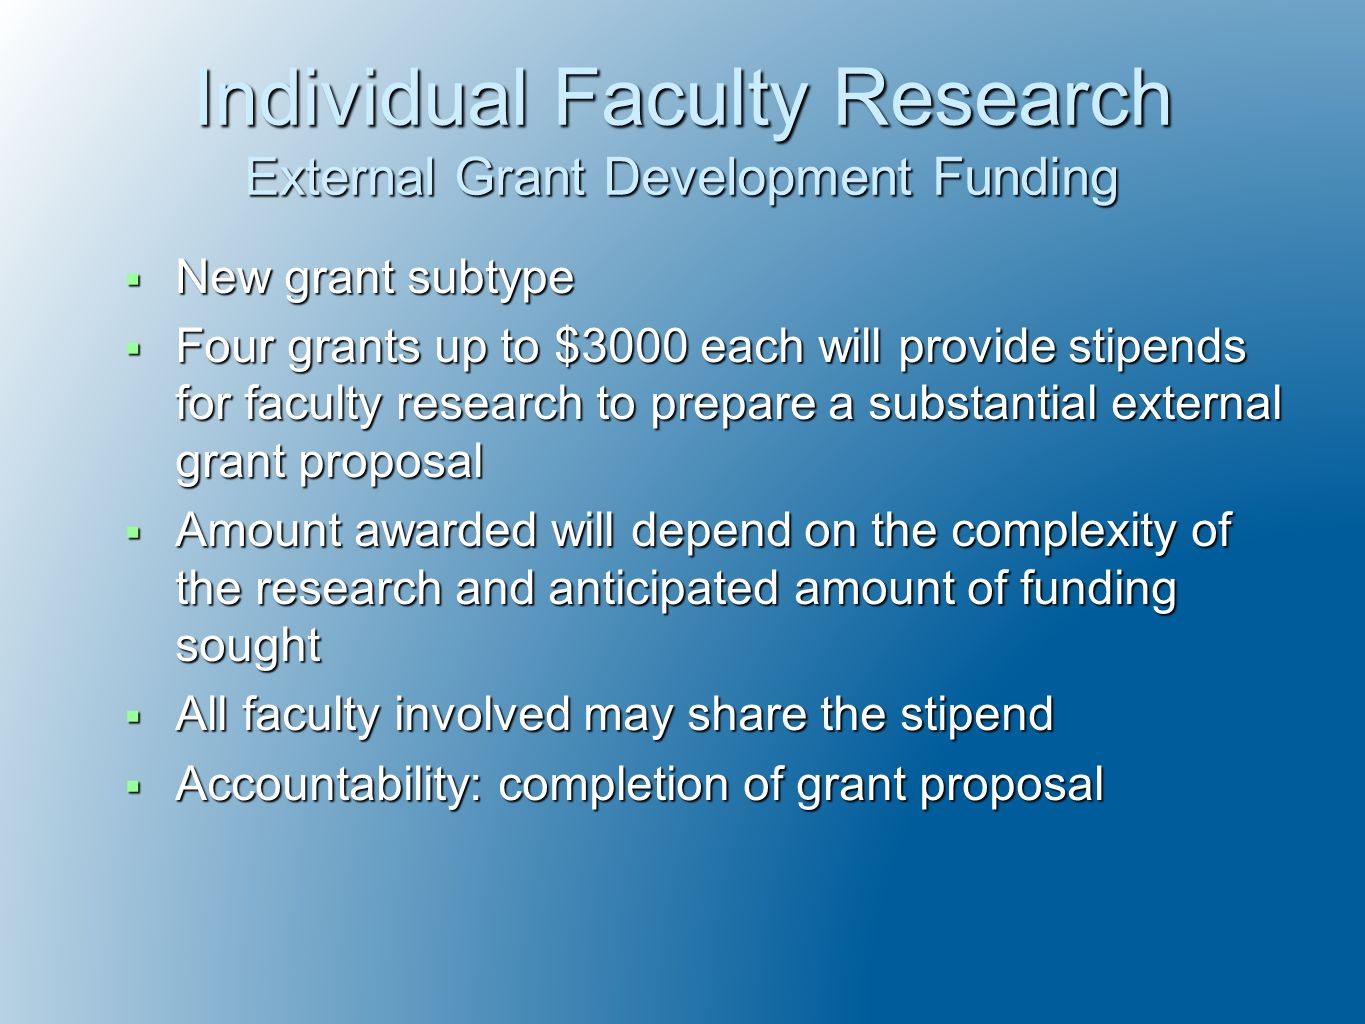 Individual Faculty Research External Grant Development Funding  New grant subtype  Four grants up to $3000 each will provide stipends for faculty research to prepare a substantial external grant proposal  Amount awarded will depend on the complexity of the research and anticipated amount of funding sought  All faculty involved may share the stipend  Accountability: completion of grant proposal